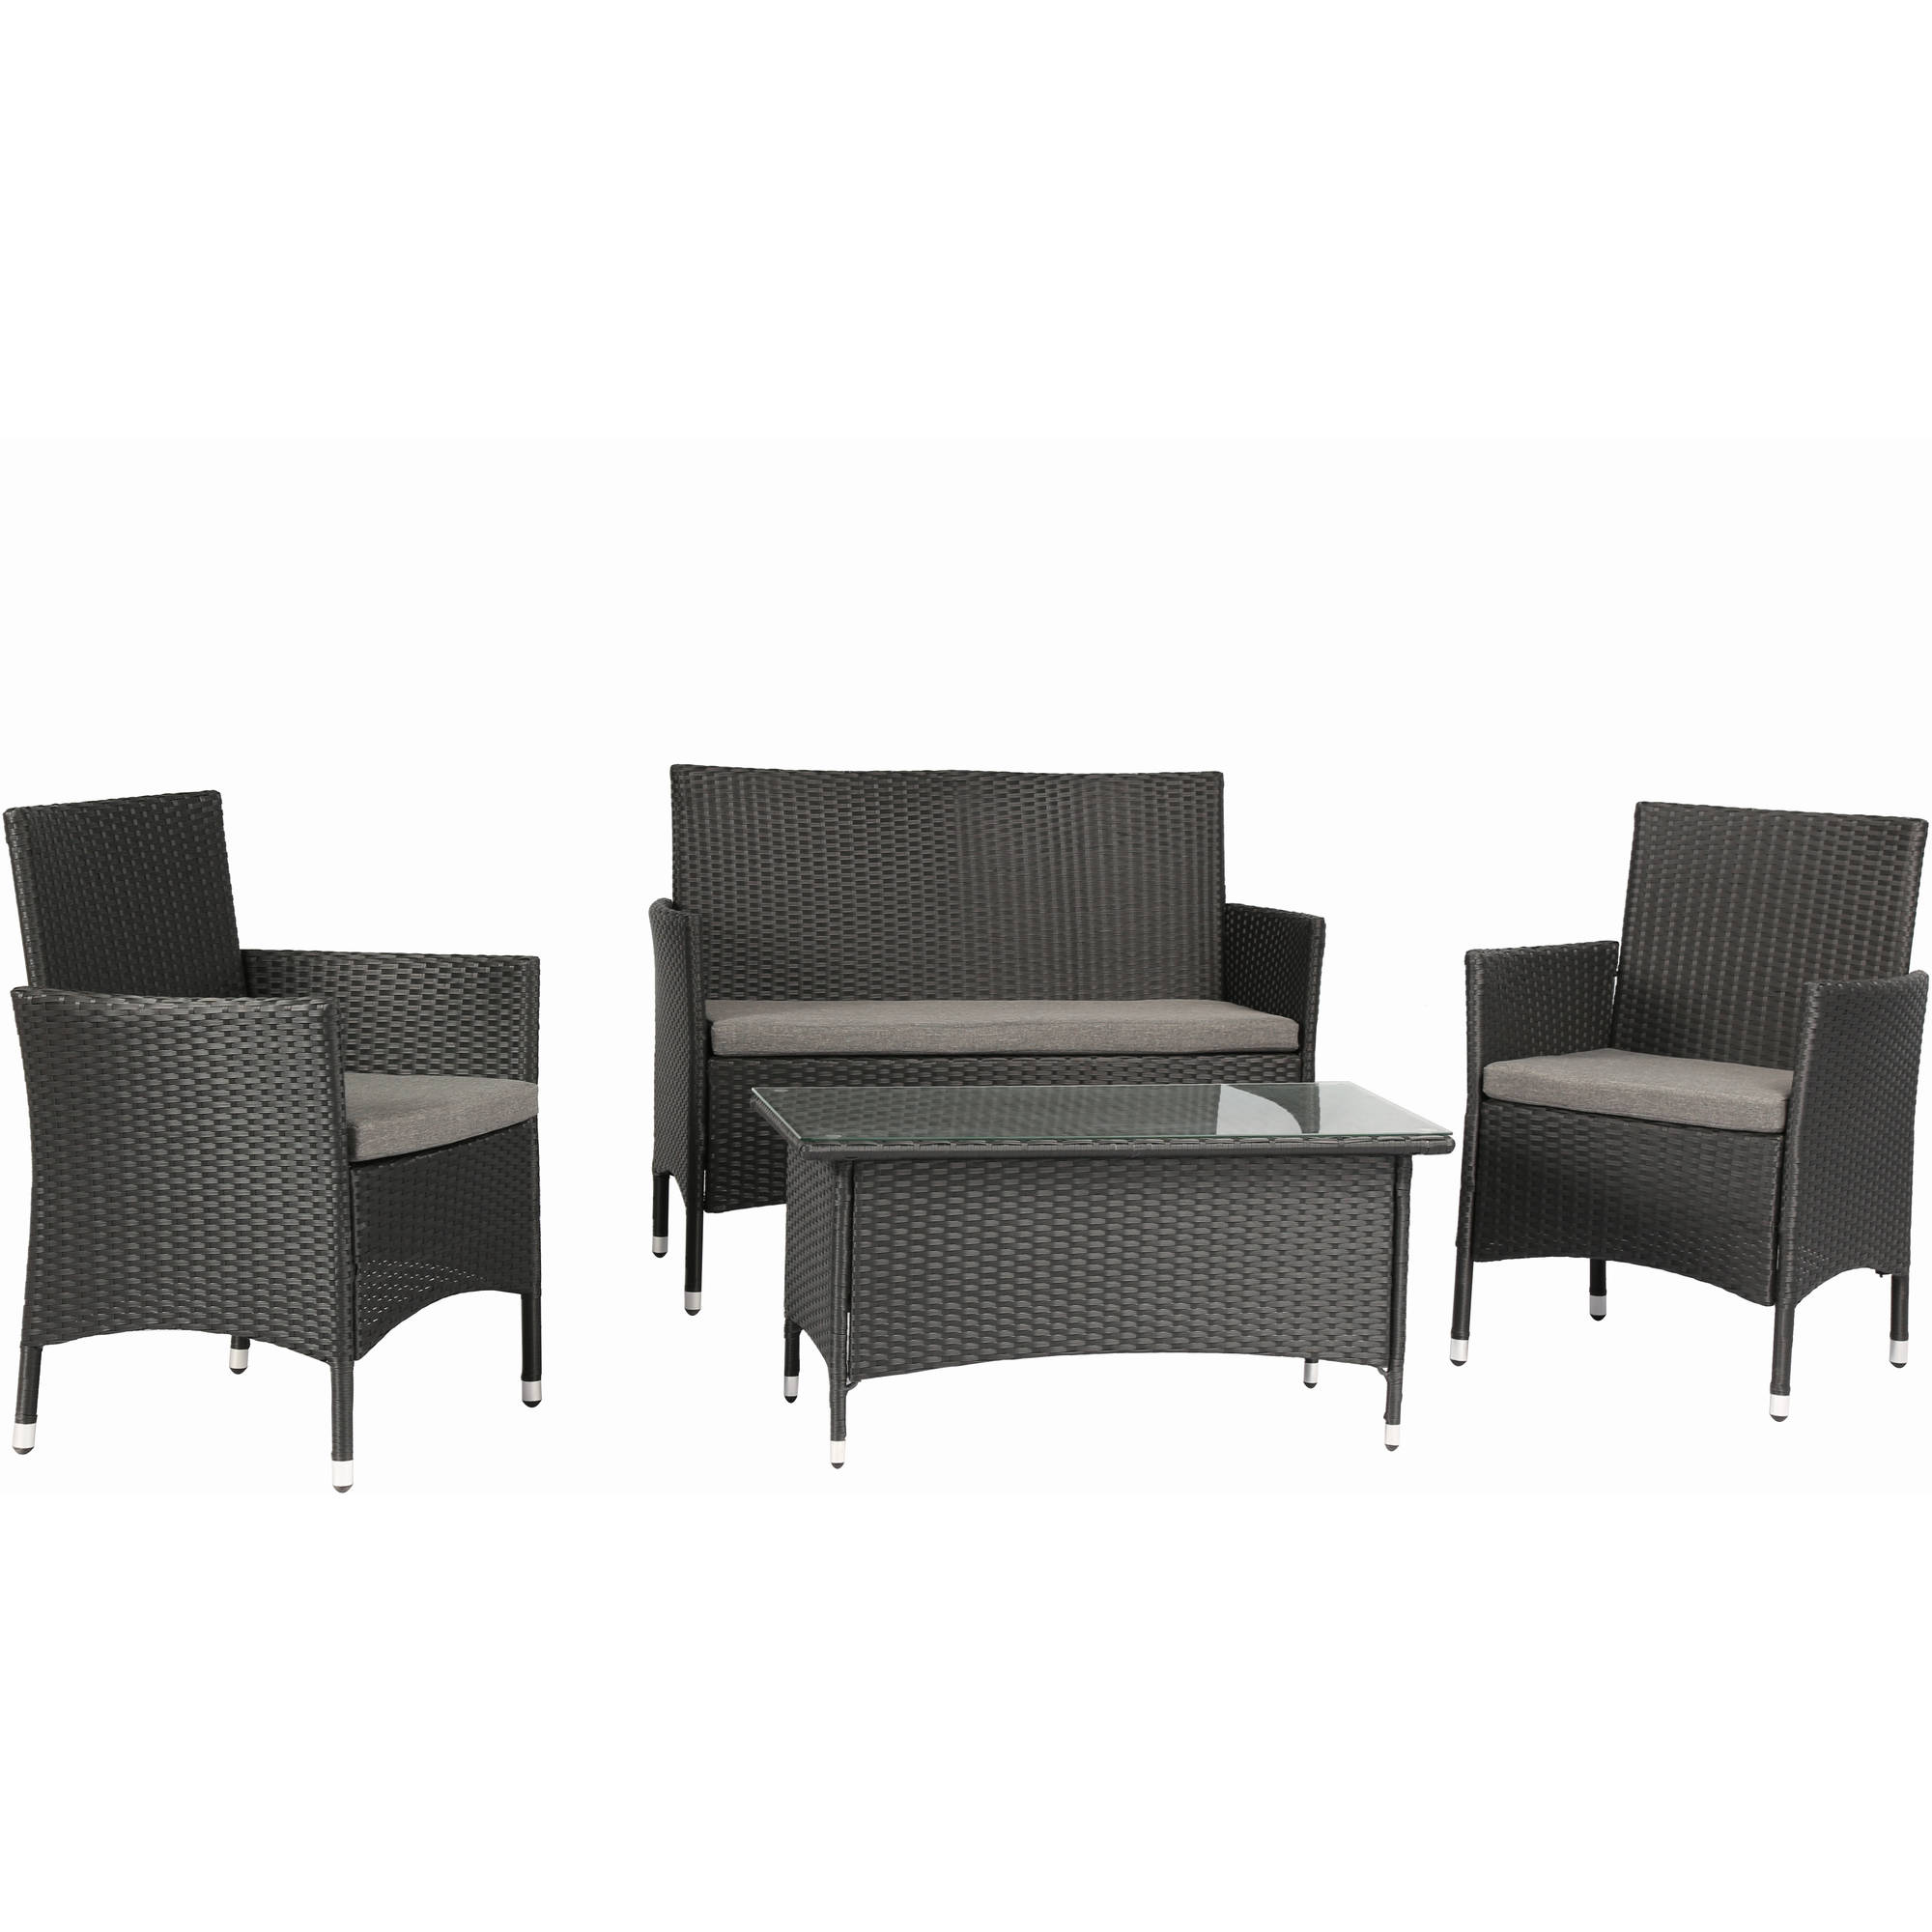 Outdoor Furniture Complete Patio Wicker Rattan Garden Set. Patio Tables And Chairs Walmart. Vintage Patio Furniture For Sale. Stop And Shop Patio Dining Set. Patio Furniture Sets Made In Usa. Wholesale Patio Furniture Sacramento Ca. Outdoor Bar Furniture Miami. Restrapping Patio Furniture Atlanta. Patio Furniture Manchester Nh